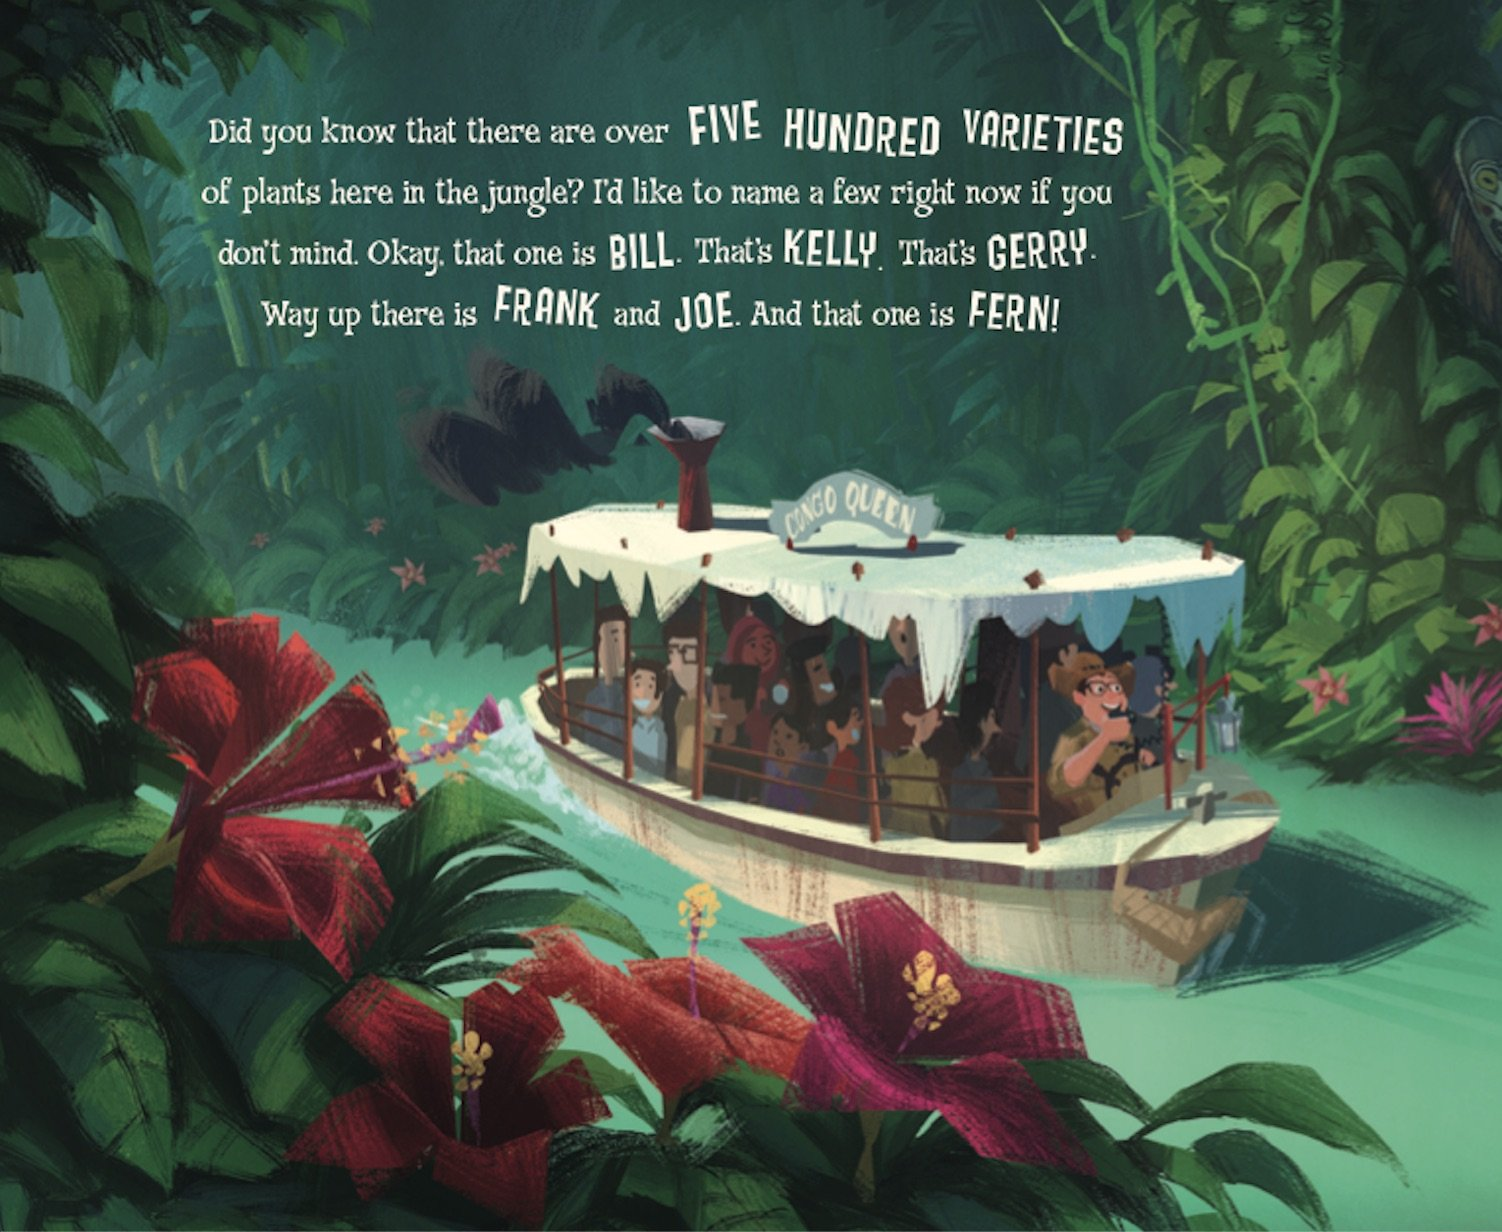 Disney Parks Presents: Jungle Cruise: Purchase Includes a CD with Narration! by Disney Press (Image #2)